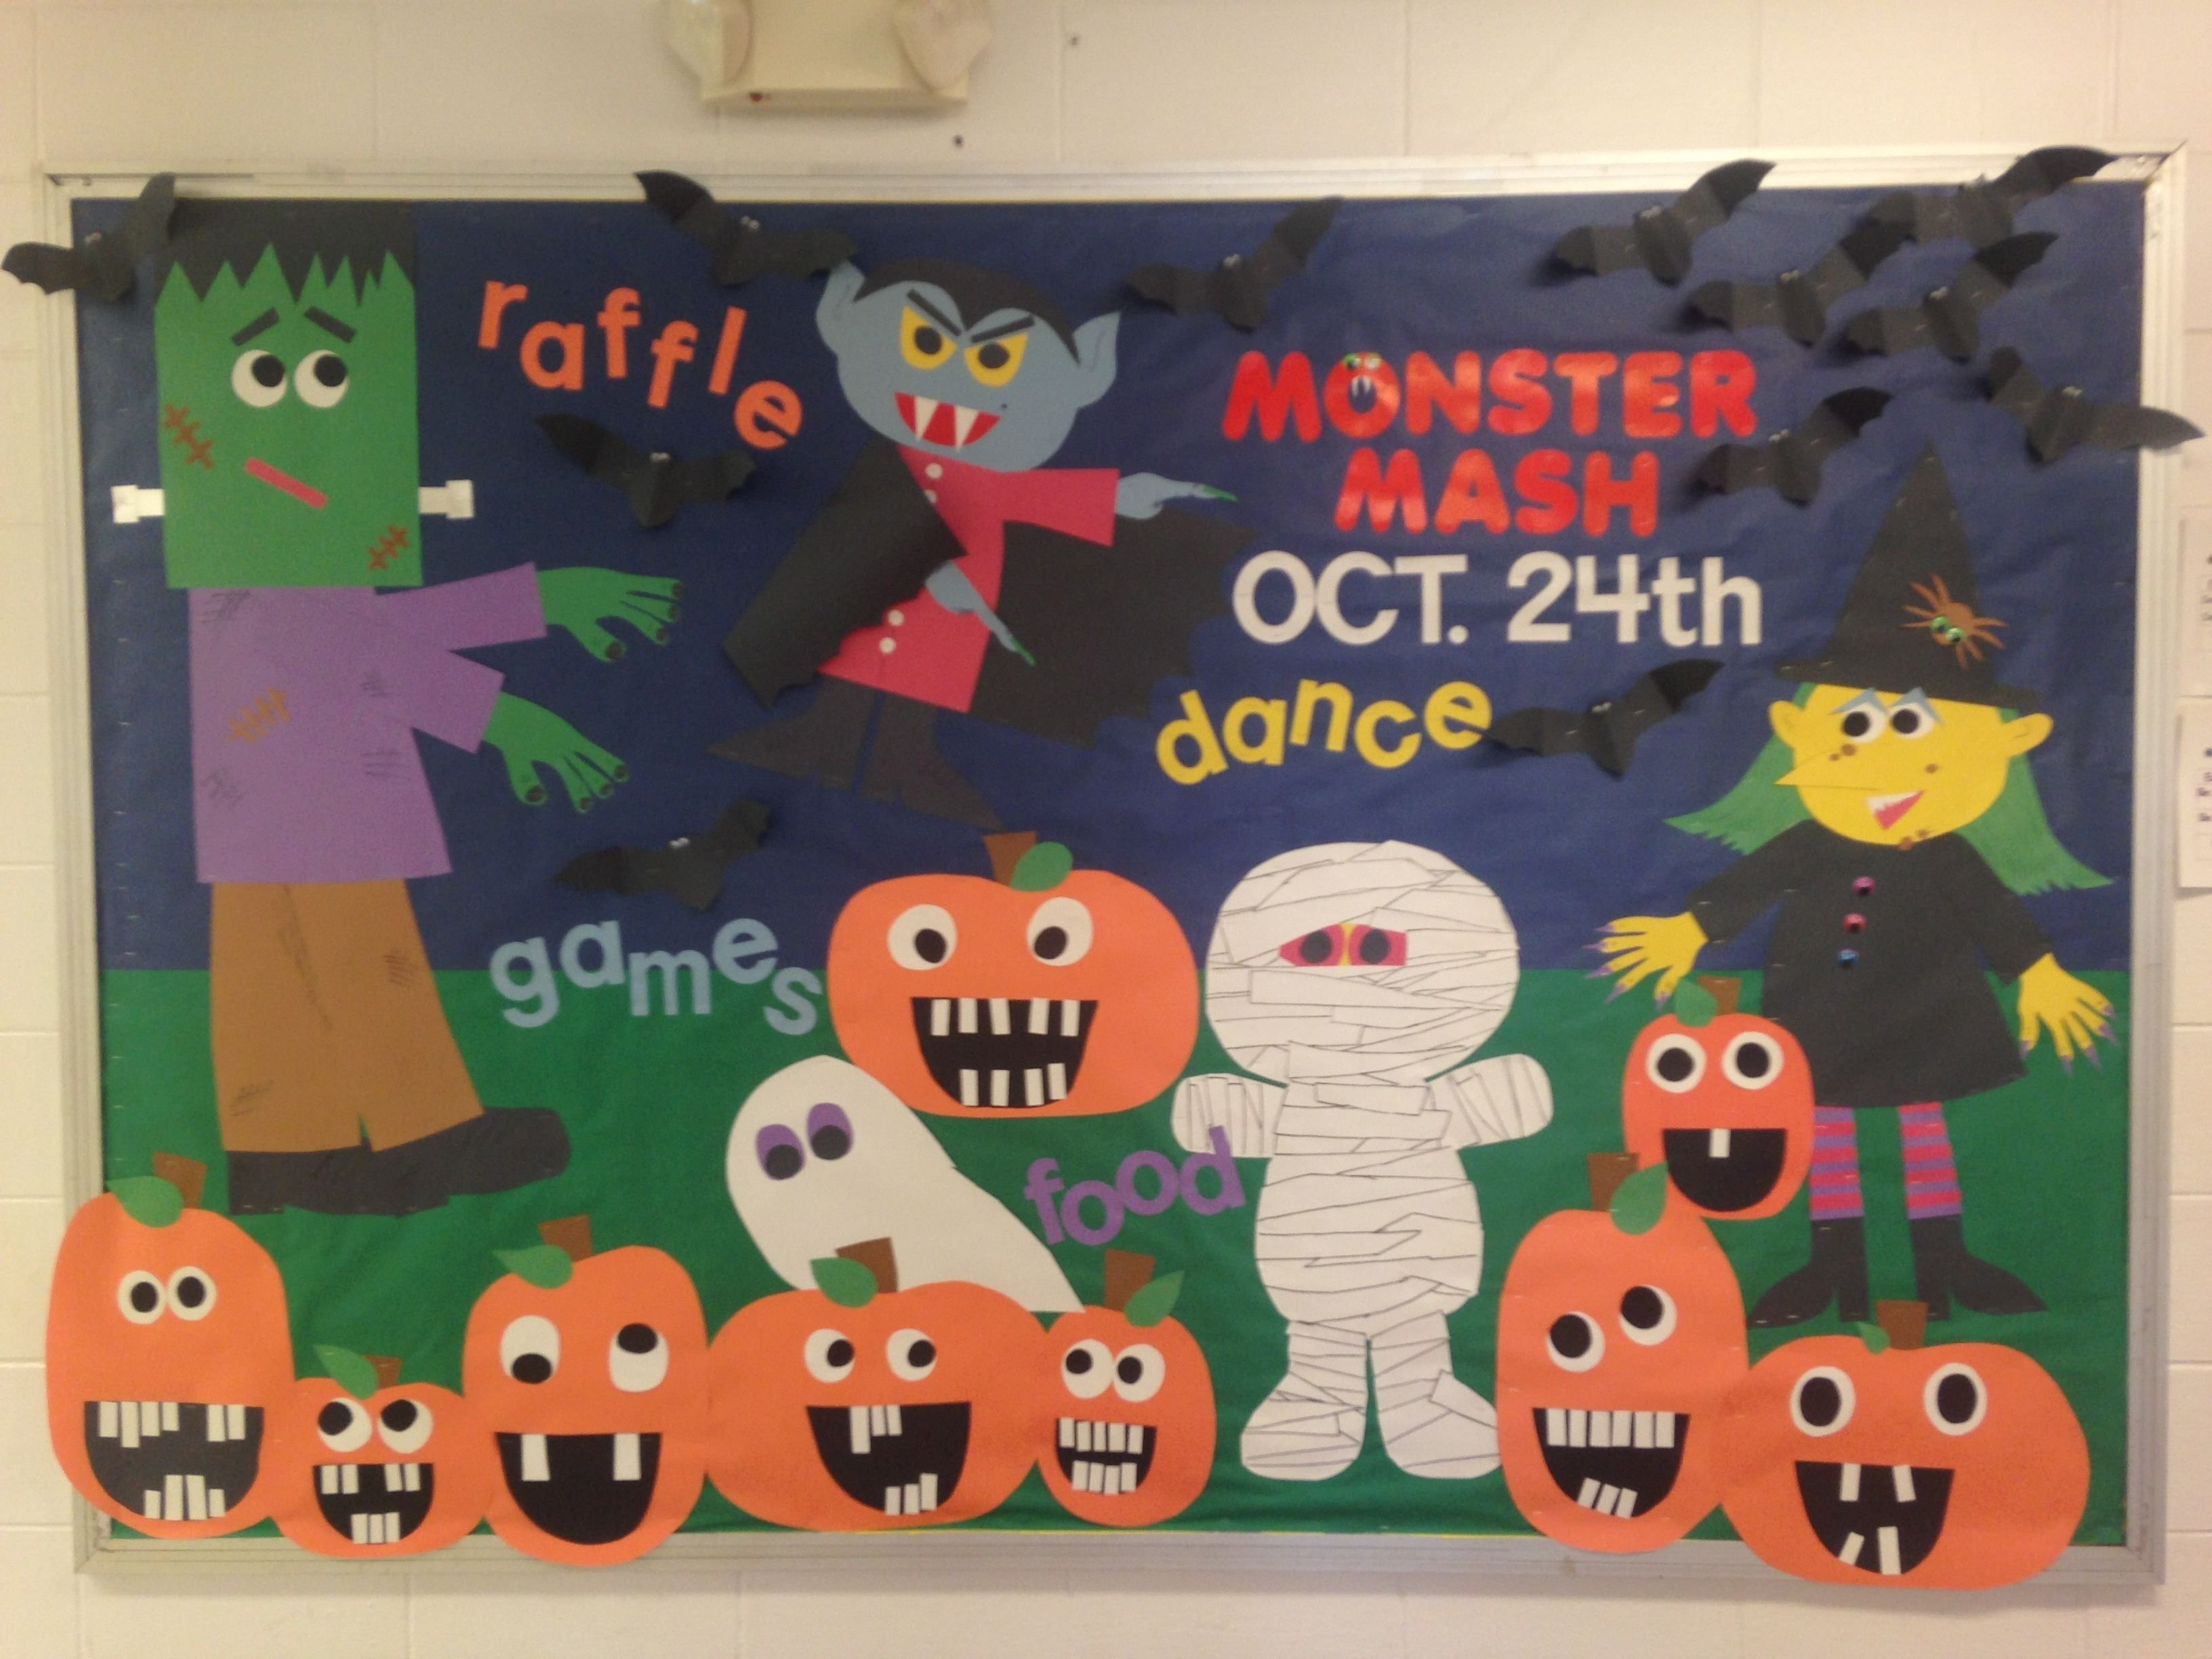 10 Pretty Halloween School Bulletin Board Ideas pinleslie byrne on bulletin boards pinterest activity board 2020